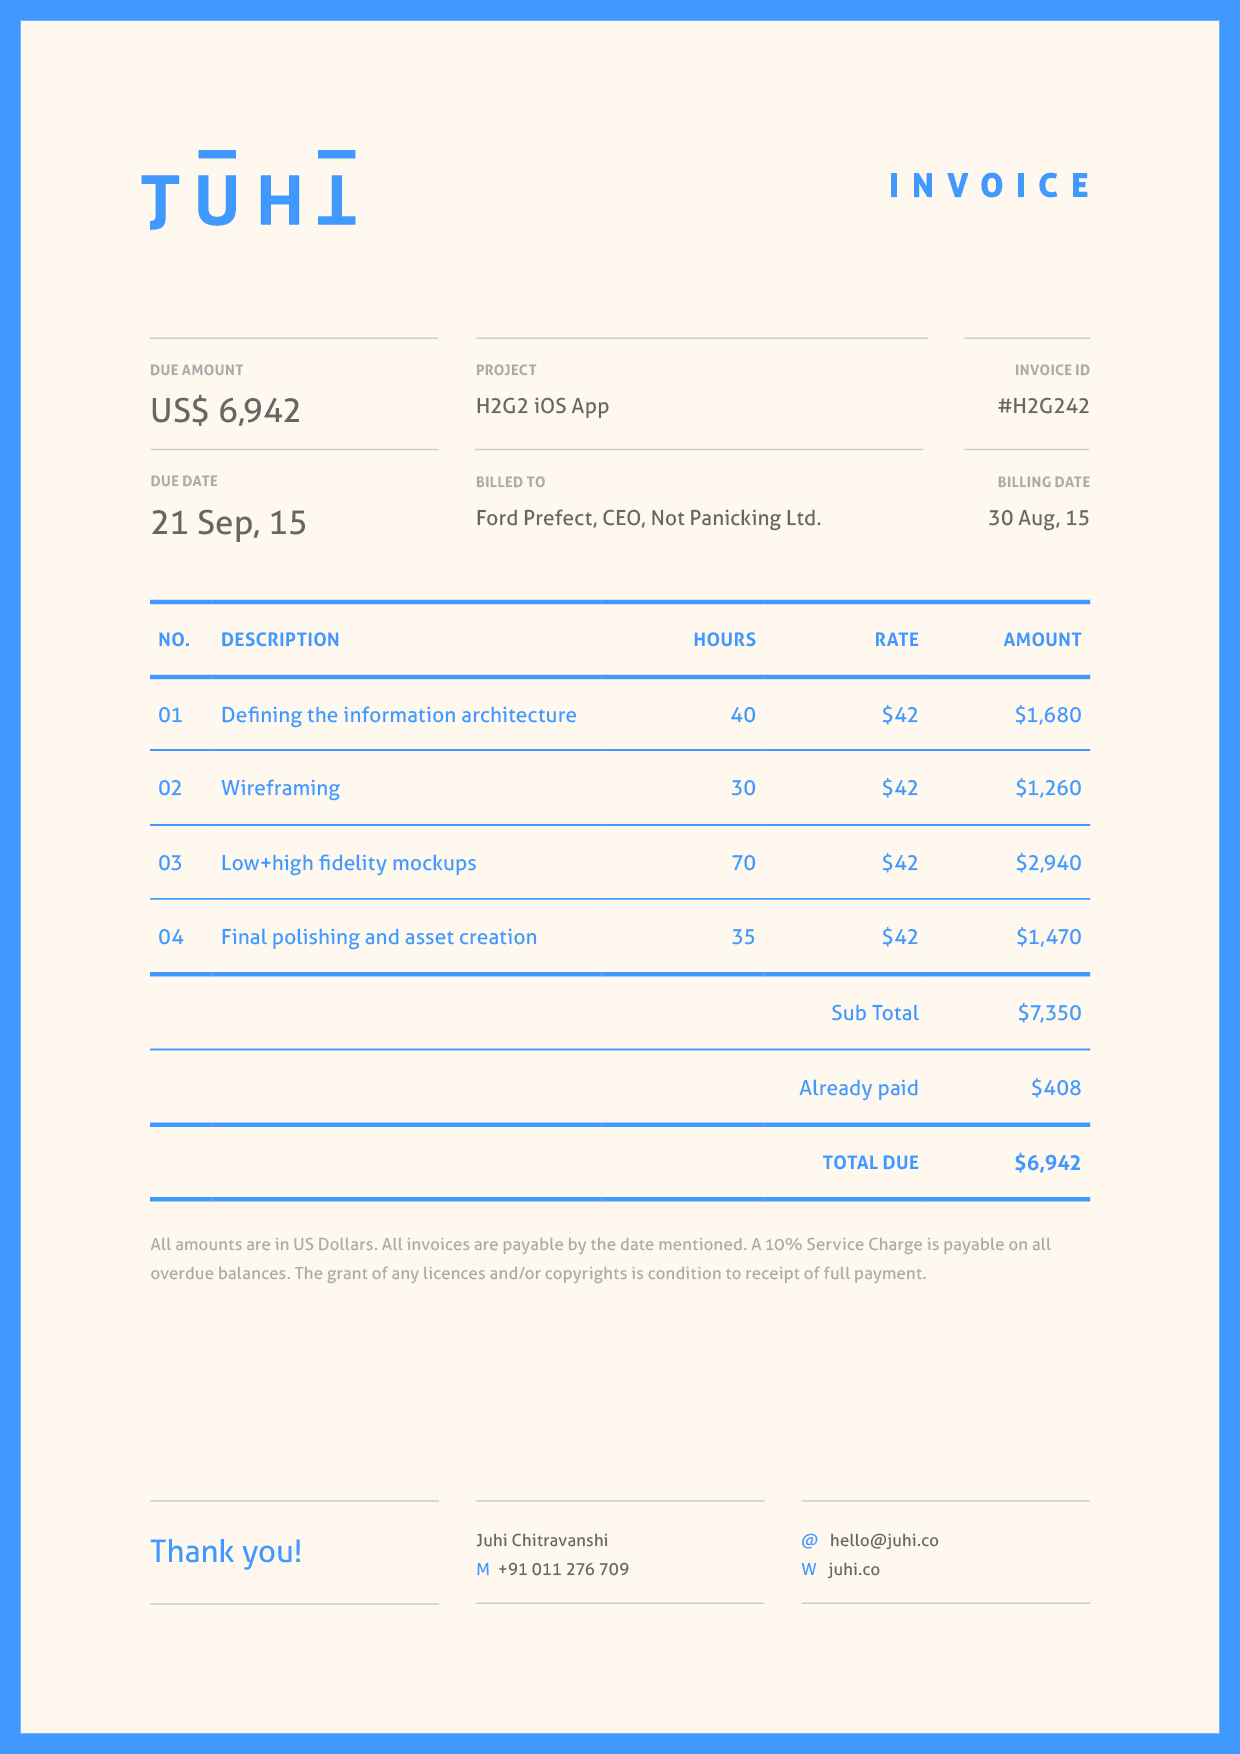 Coolmathgamesus  Outstanding Dont Hold Back On Your Invoice  Inspiring Designs  With Extraordinary Invoice By Juhi Chitravanshi Follow With Extraordinary Invoicing Program Also Types Of Invoices In Addition Invoice Template Online And Invoice Holder As Well As Dhl Proforma Invoice Additionally Fedex International Commercial Invoice From Inspirationfeedcom With Coolmathgamesus  Extraordinary Dont Hold Back On Your Invoice  Inspiring Designs  With Extraordinary Invoice By Juhi Chitravanshi Follow And Outstanding Invoicing Program Also Types Of Invoices In Addition Invoice Template Online From Inspirationfeedcom